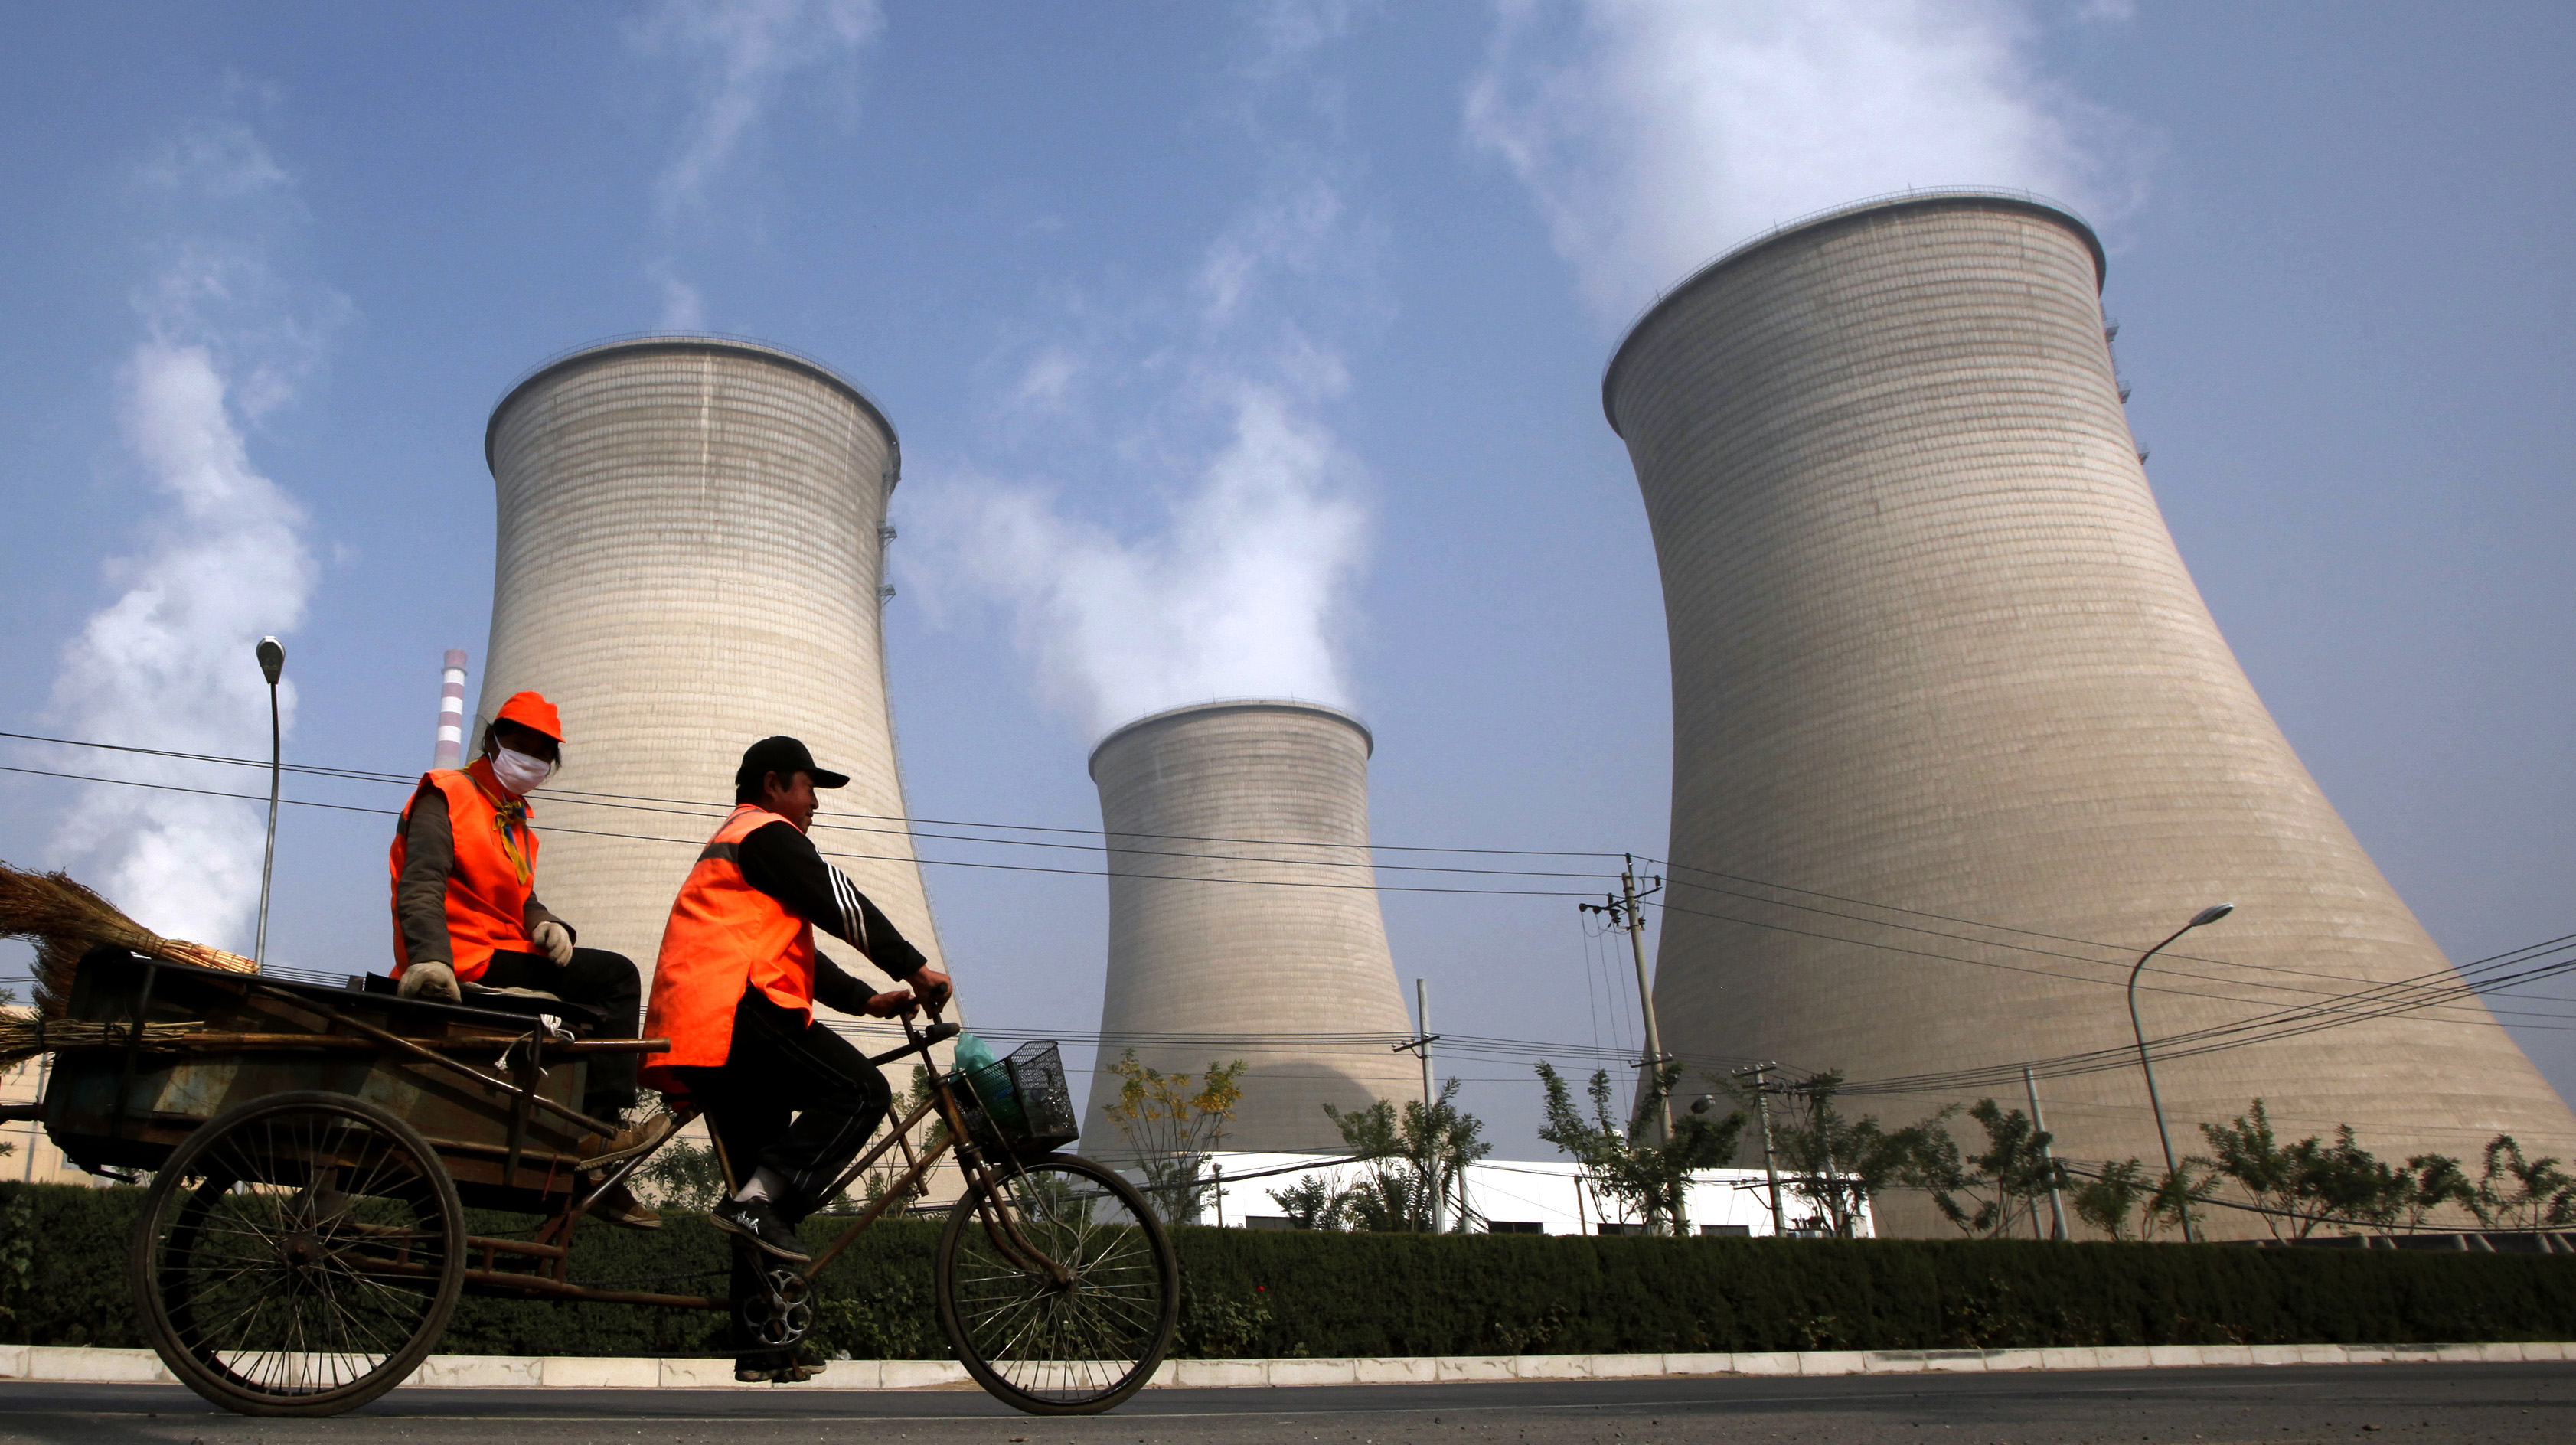 Street cleaners ride their motorised tricycles past the chimneys of a power station located on the outskirts of Beijing October 29, 2009. China is on track to build its first commercial-scale power plant that can capture and store emissions, but experts say it must speed up research on where and how to sequester carbon. China is the world's biggest emitter of the greenhouse gasses that cause global warming and is under increasing pressure to agree to curb output. But coal is China's most plentiful domestic source of energy, and the government hopes for decades of rapid economic expansion to lift millions more from poverty, so capturing and storing carbon dioxide is likely to be crucial to any reduction.      REUTERS/David Gray       (CHINA POLITICS ENVIRONMENT) - GM1E5AT10V201